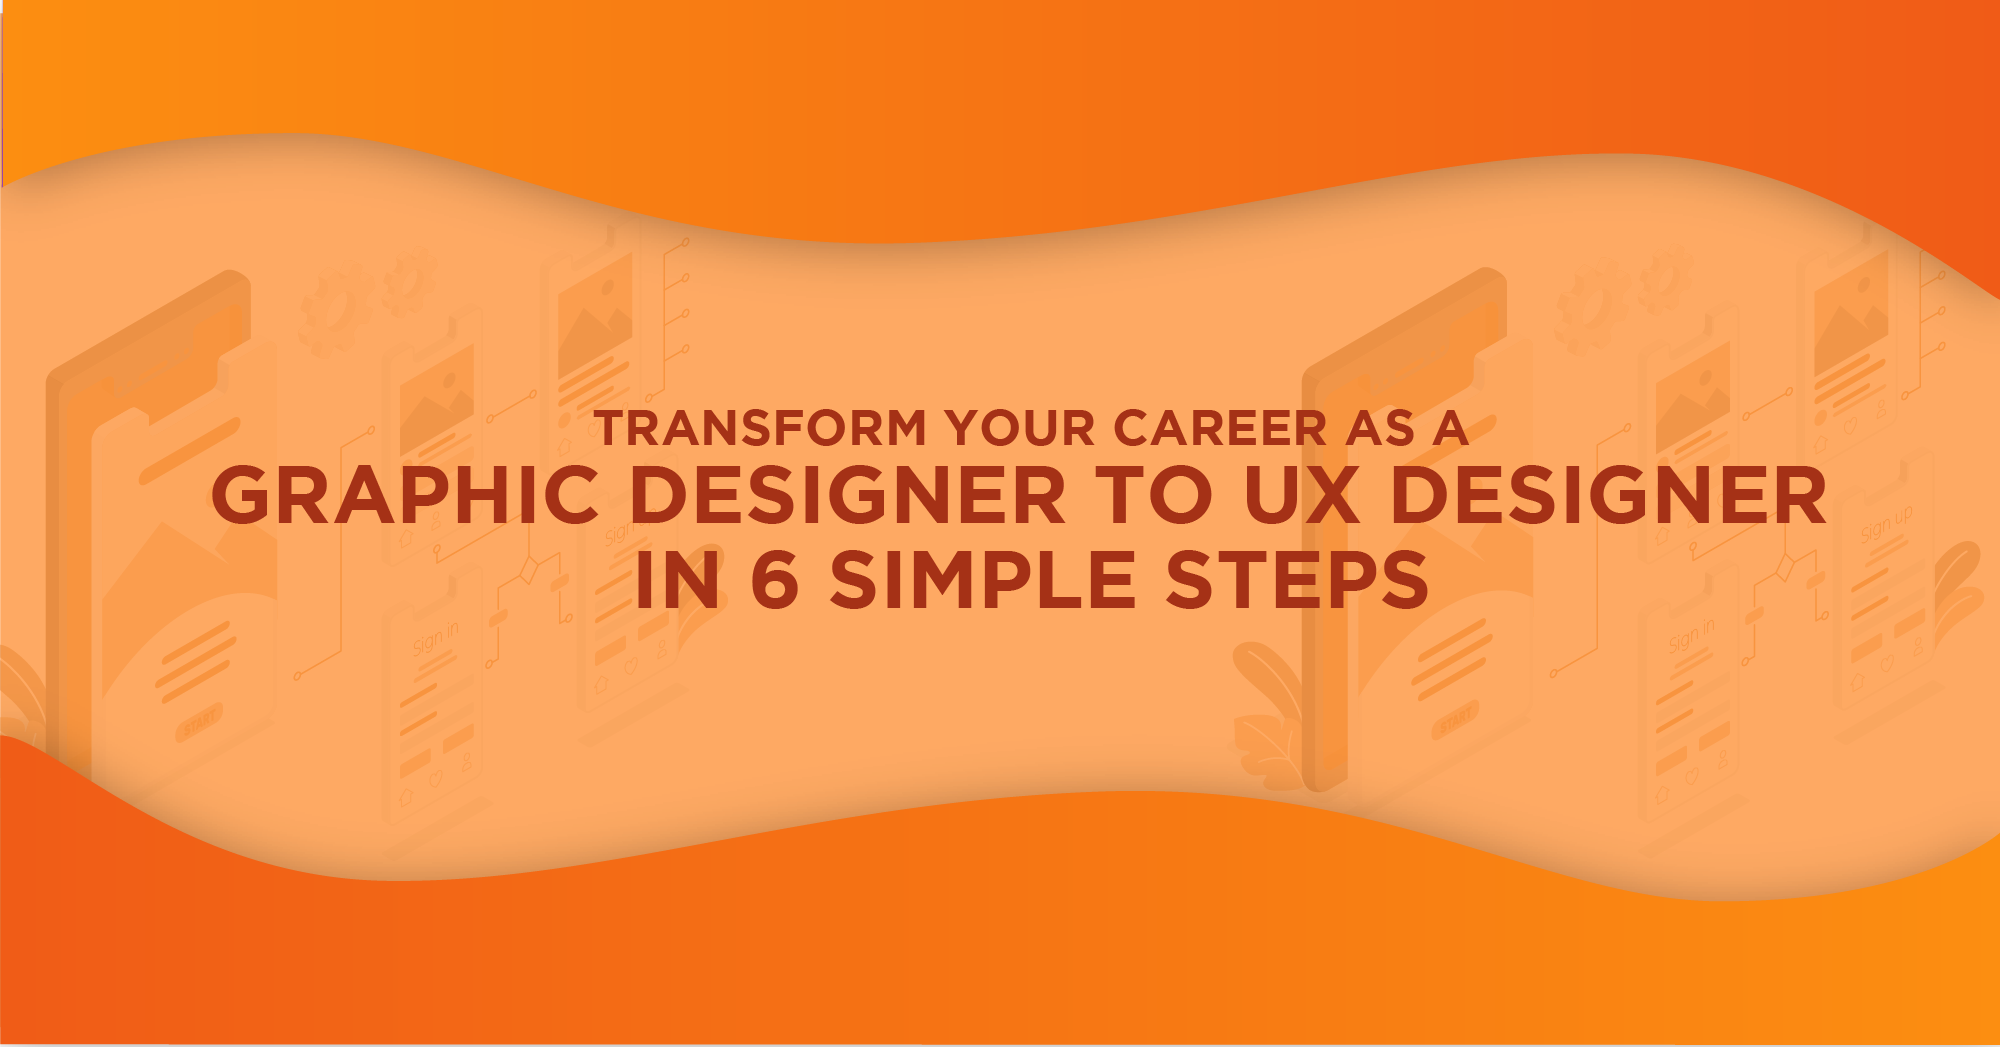 Transform Your Career as a Graphic Designer to UX Designer in 6 Simp...